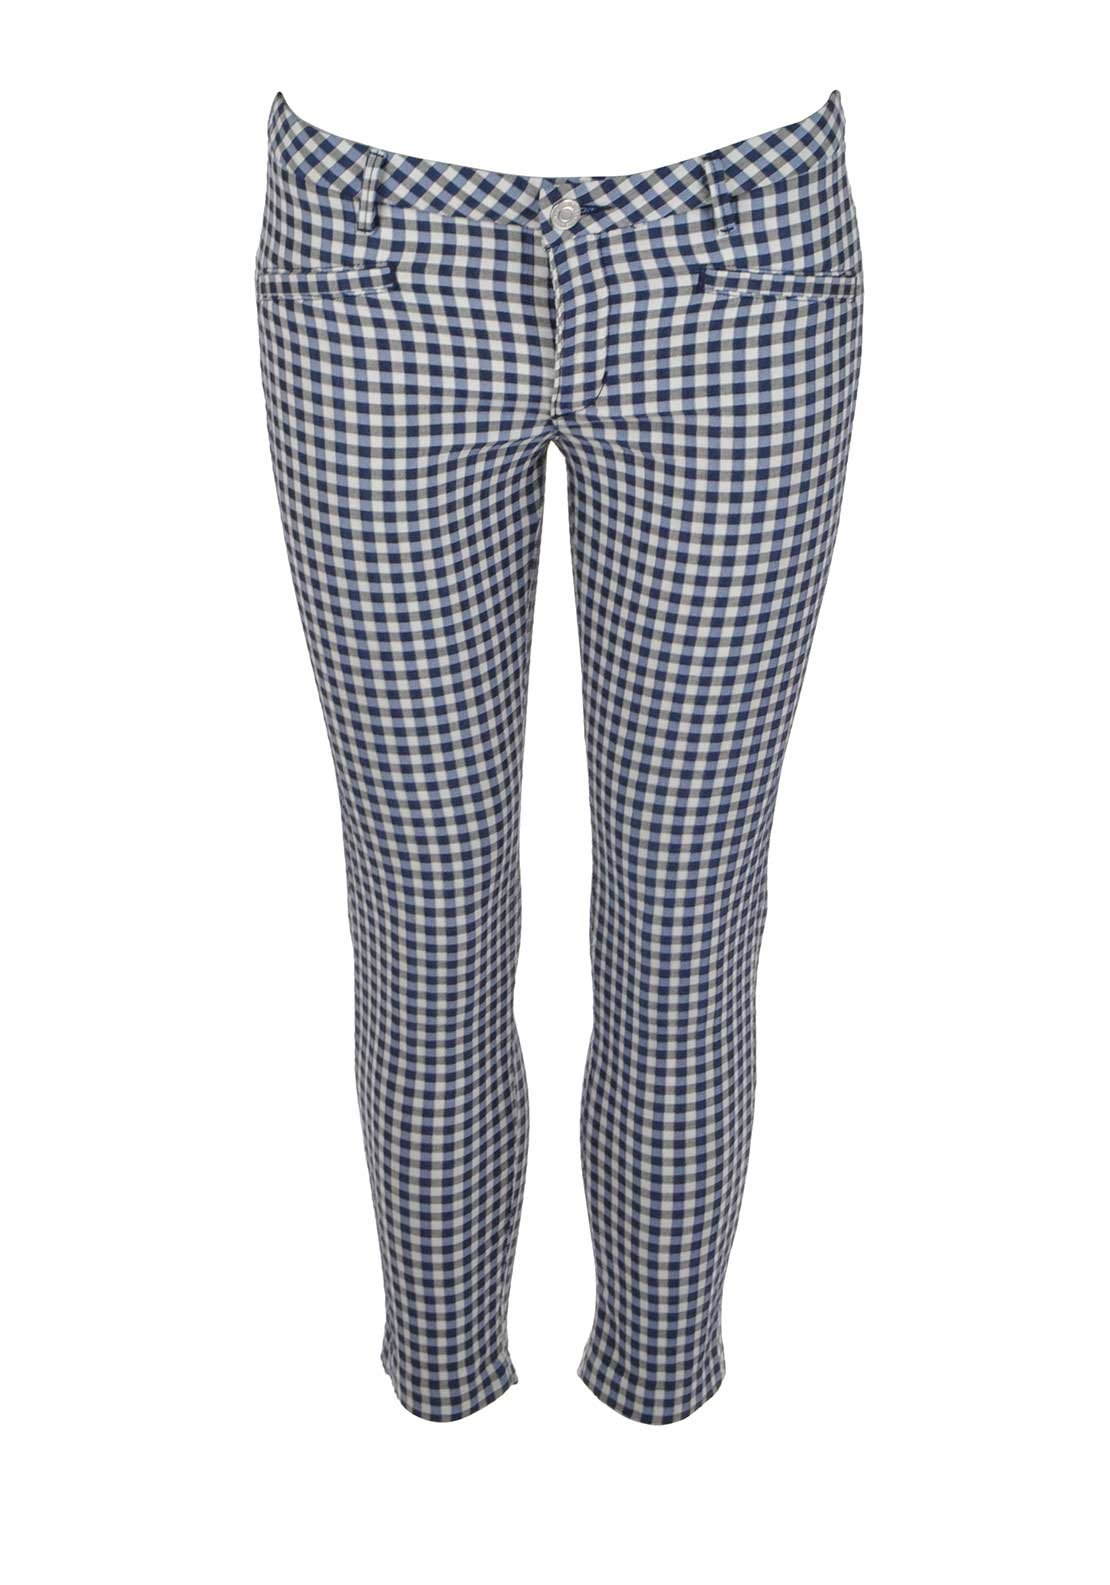 Guess Womens Chequered 7/8 Skinny Trousers, Blue